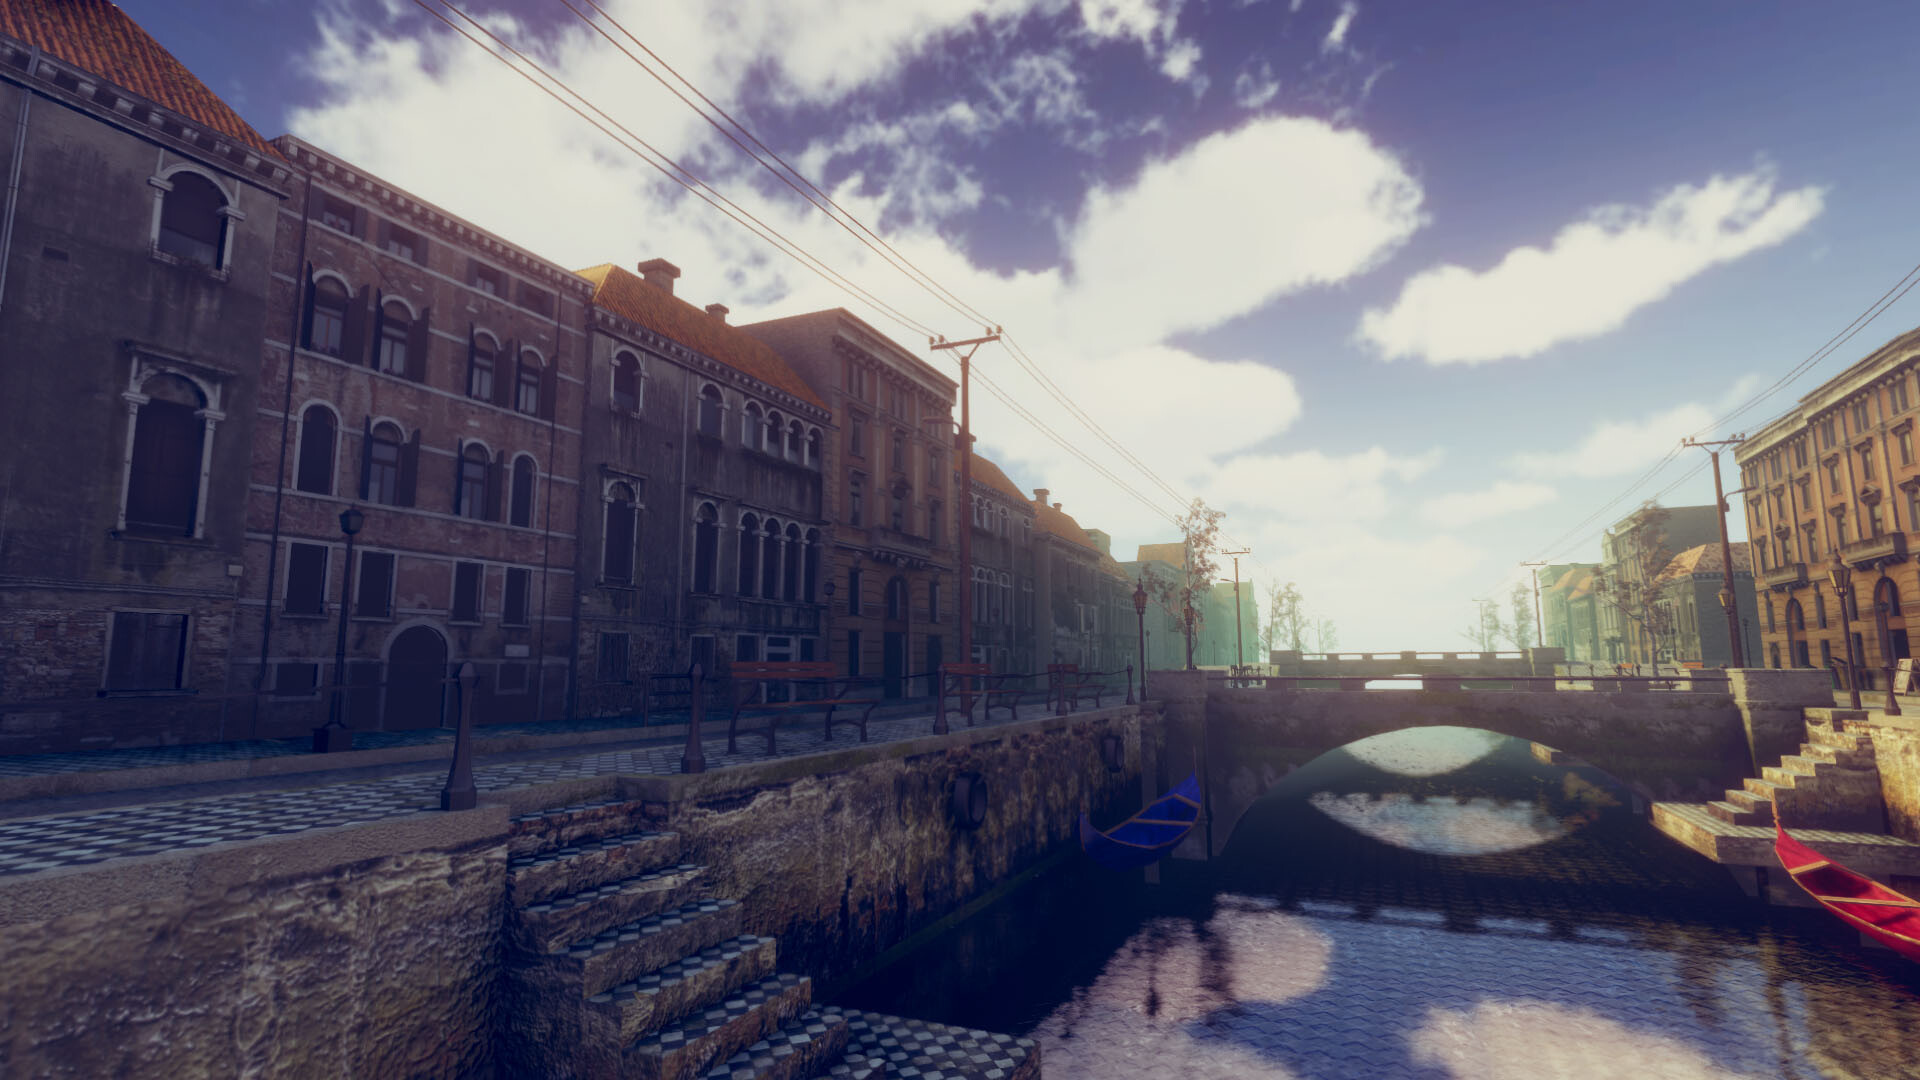 An image showing Venice asset pack, created with Unity Engine.